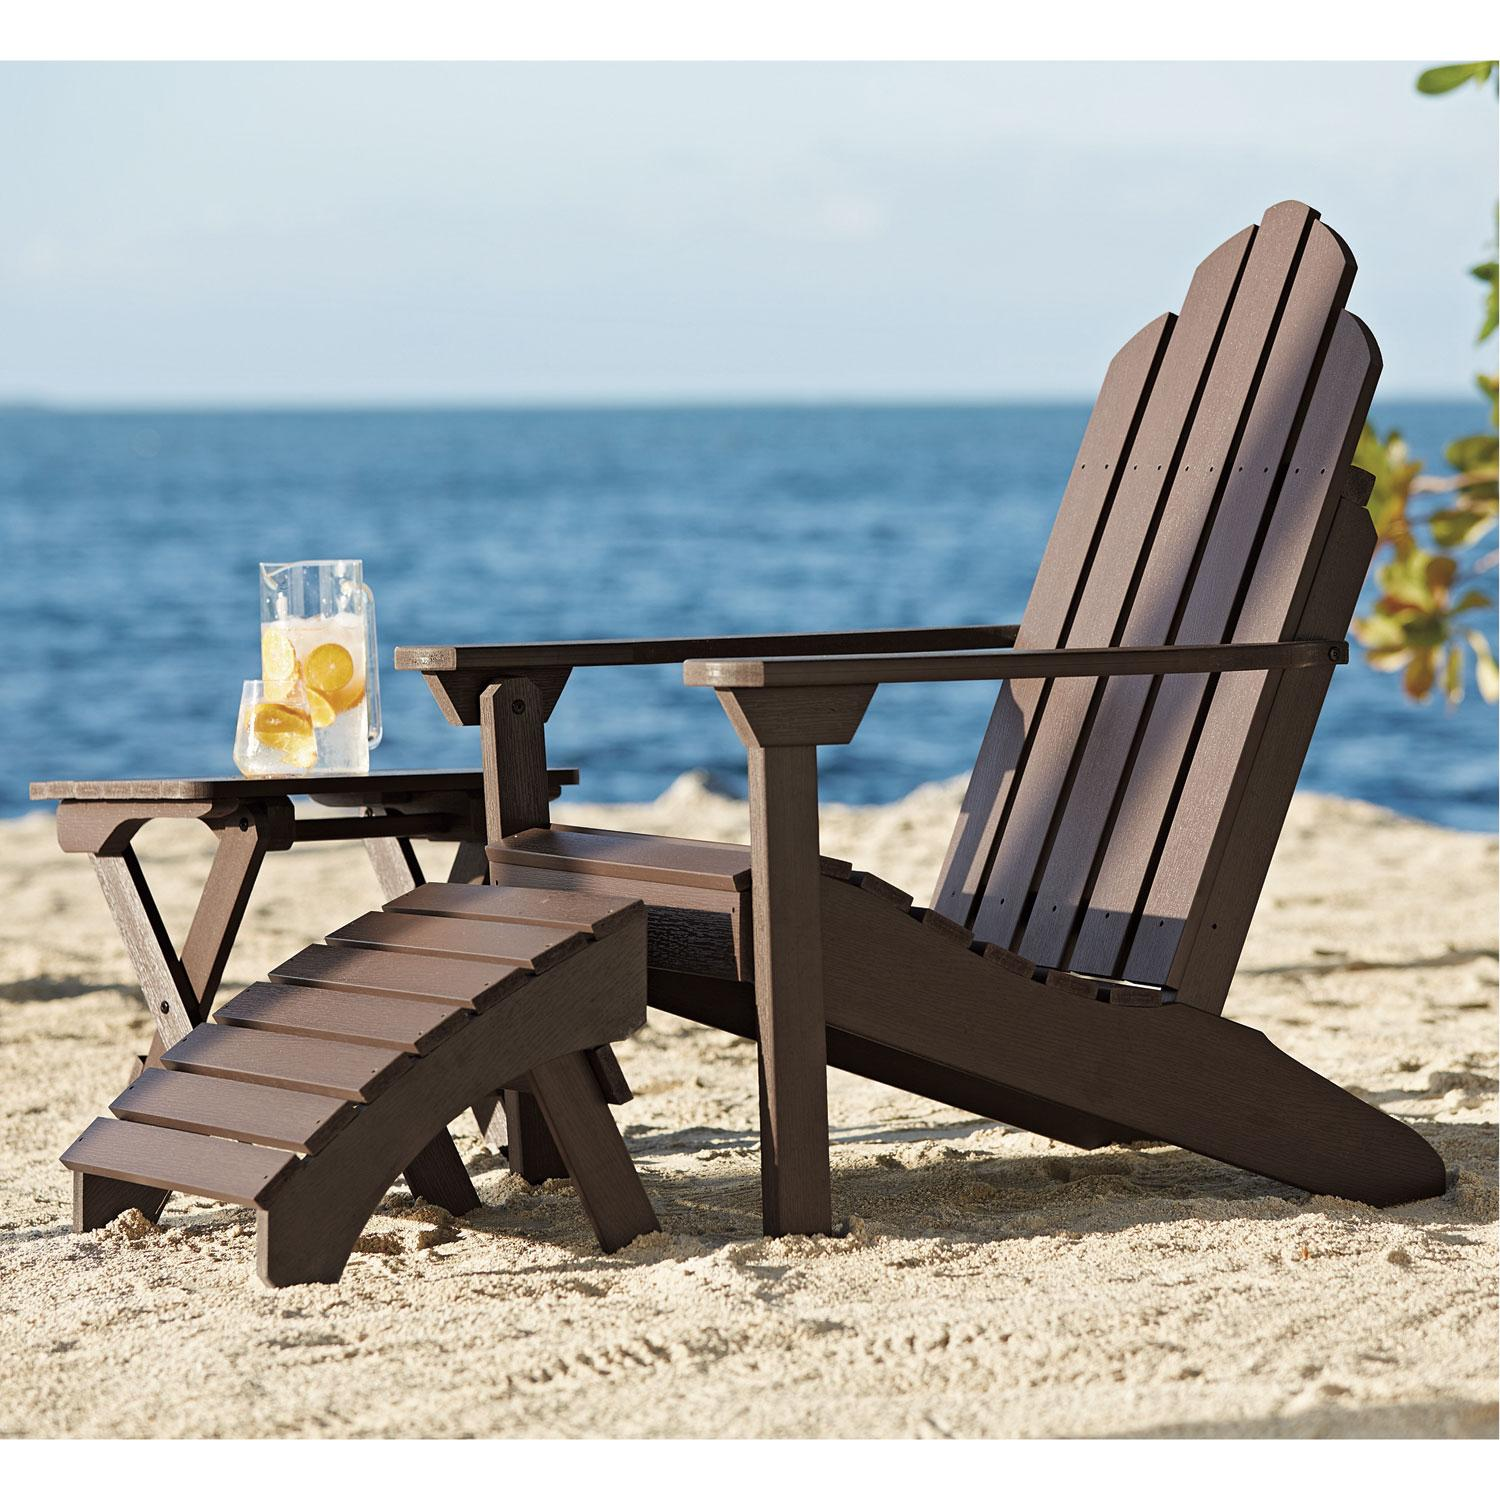 Adirondack Chairs & Outdoor Furniture - Bark Company